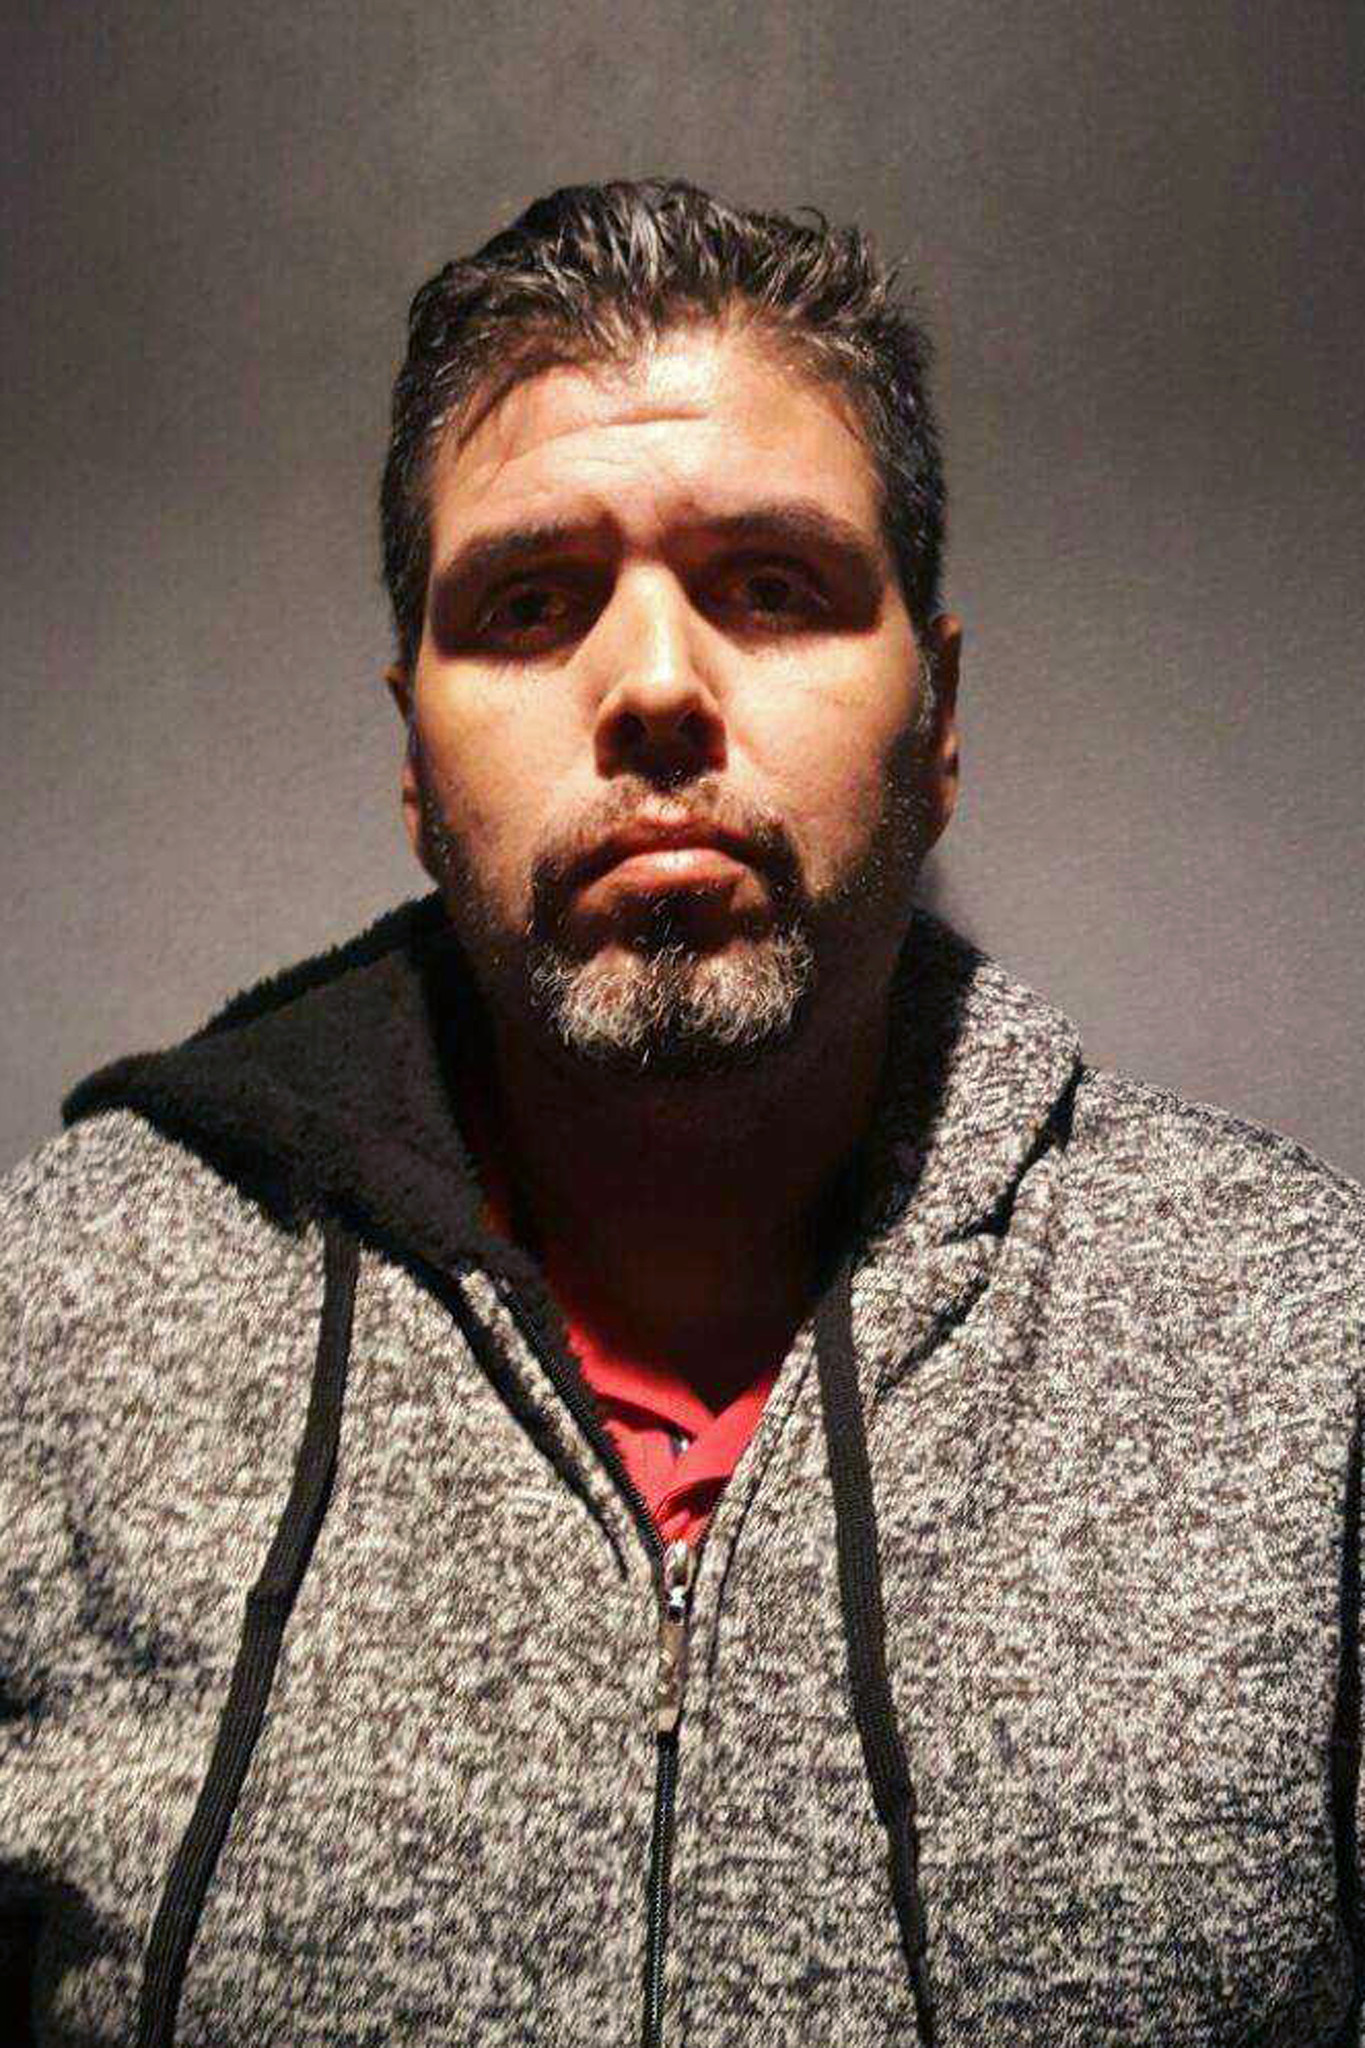 Suspected drug kingpin charged with trafficking enough fentanyl to kill 10 million people